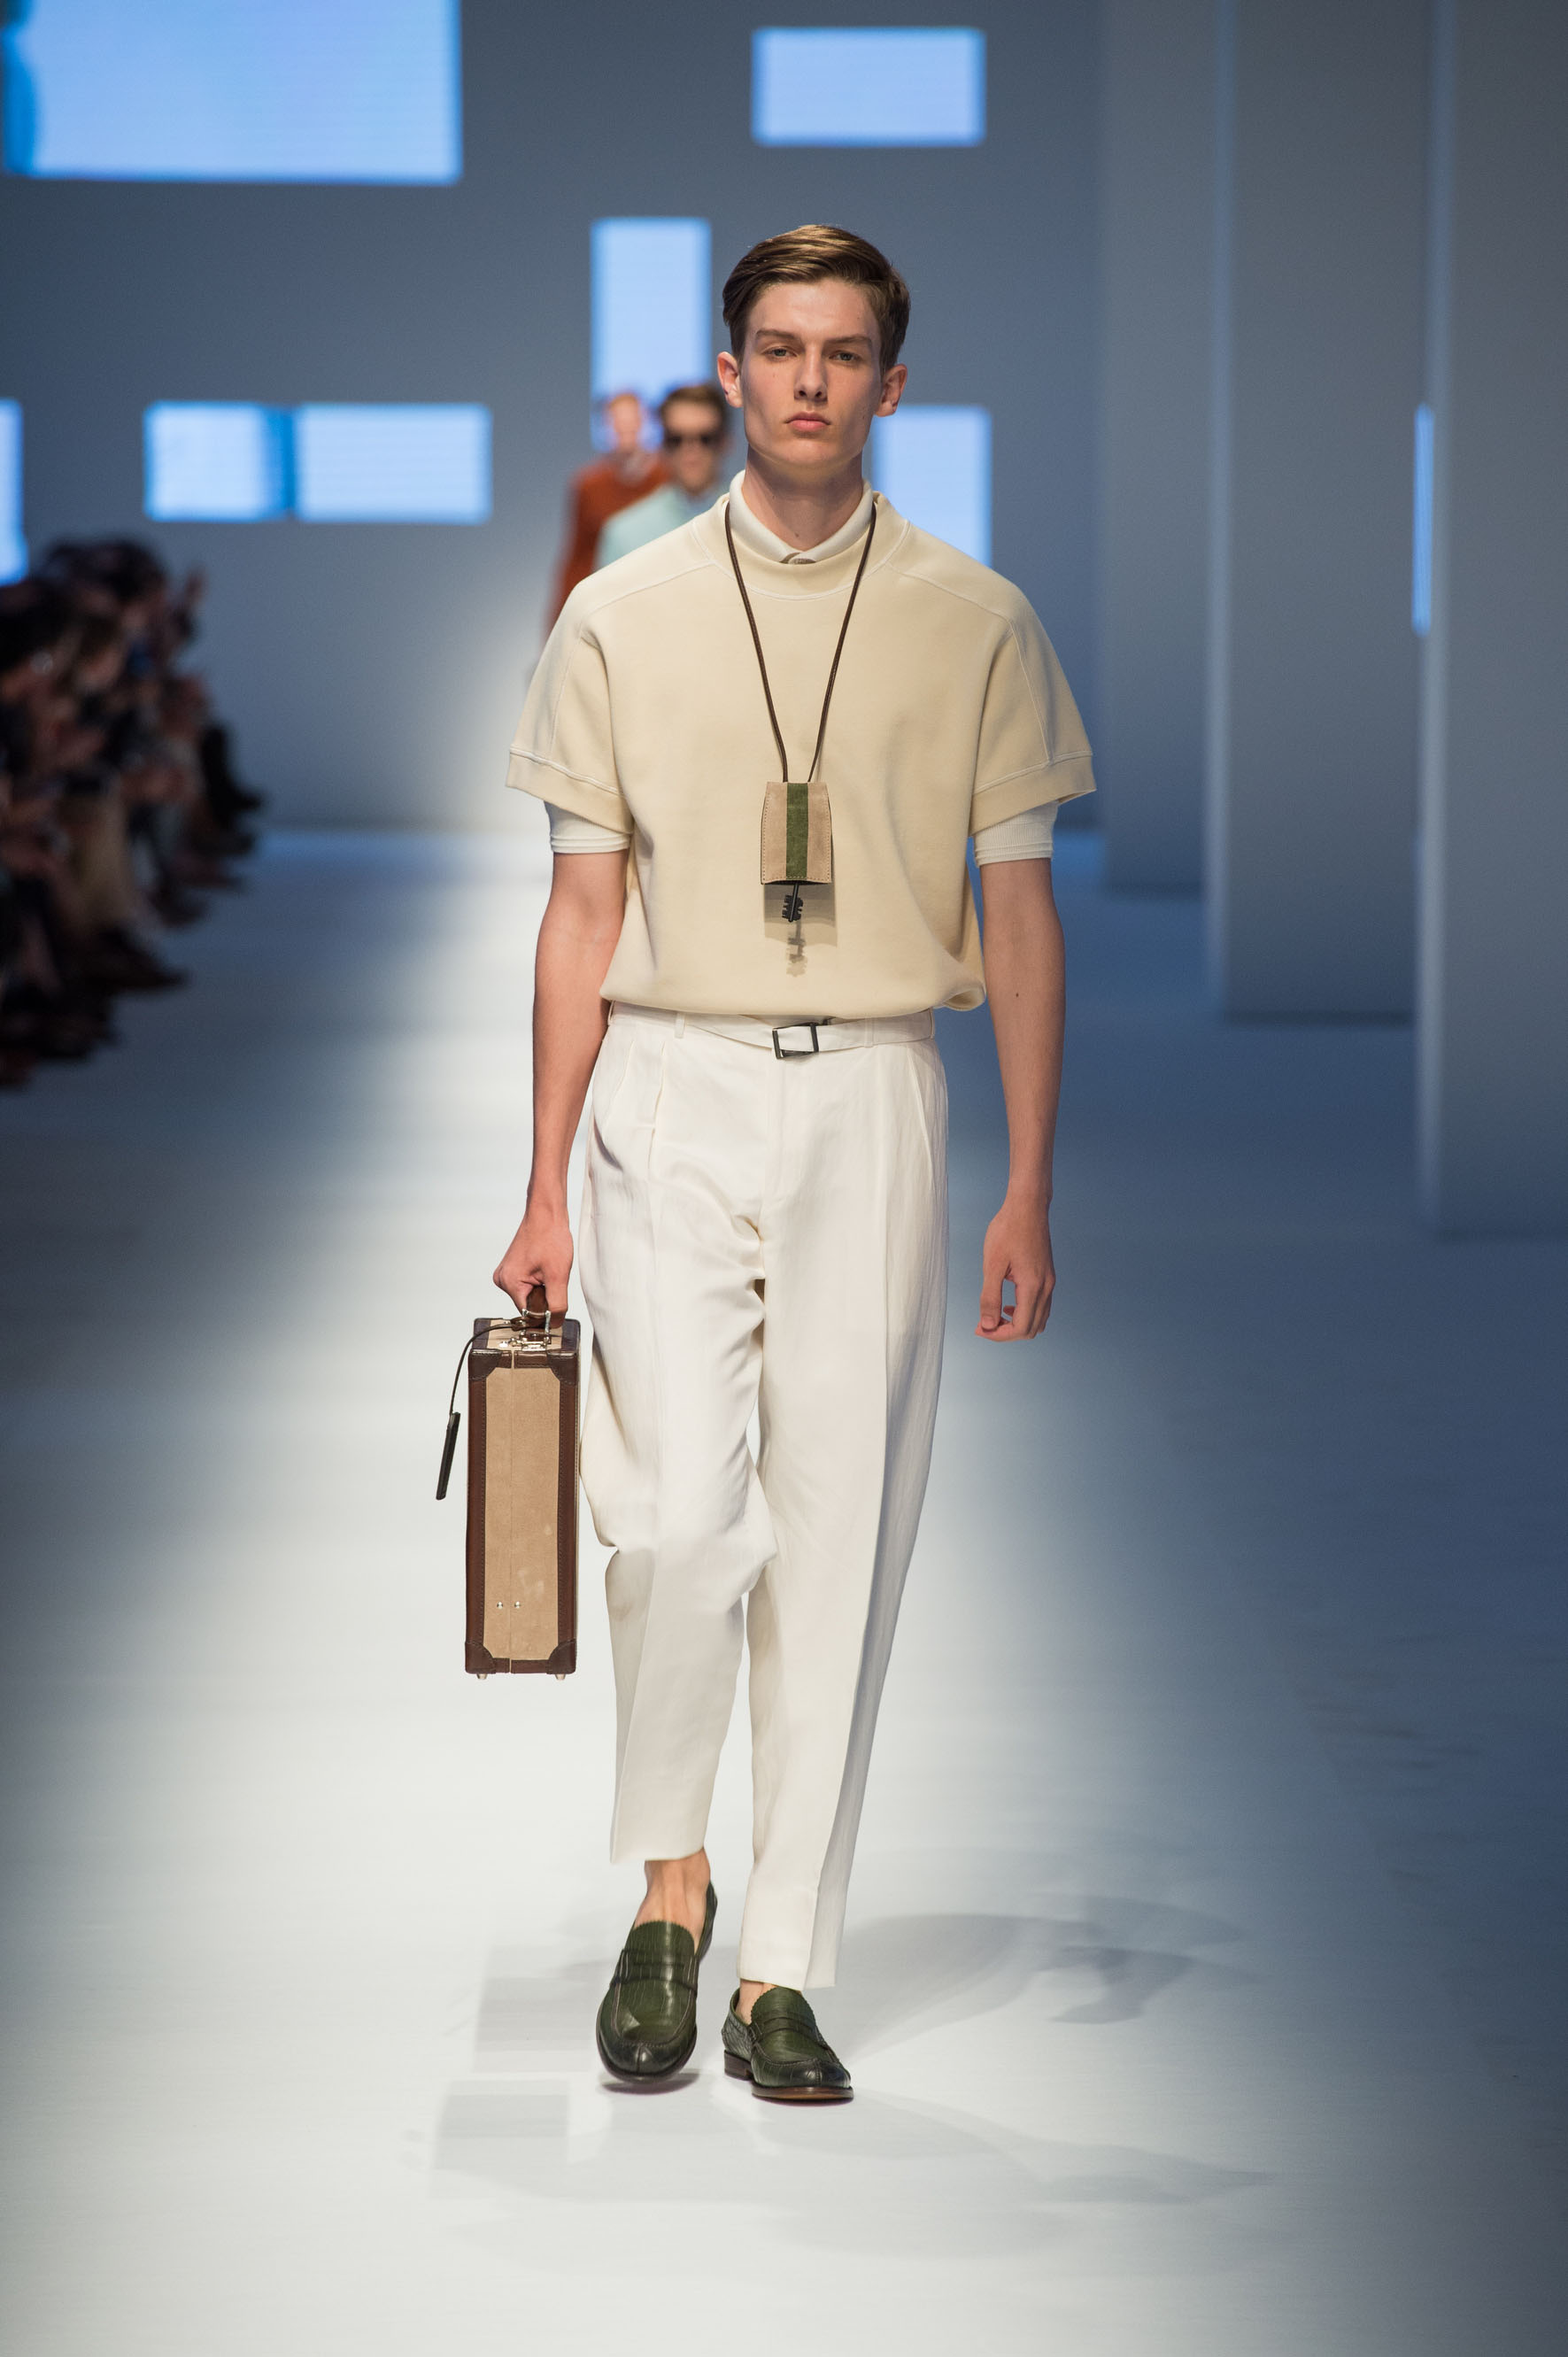 Cotton shirt, cashmere polo, linen-silk pants, crocodile loafers, key holder, briefcase with contrast color stripe